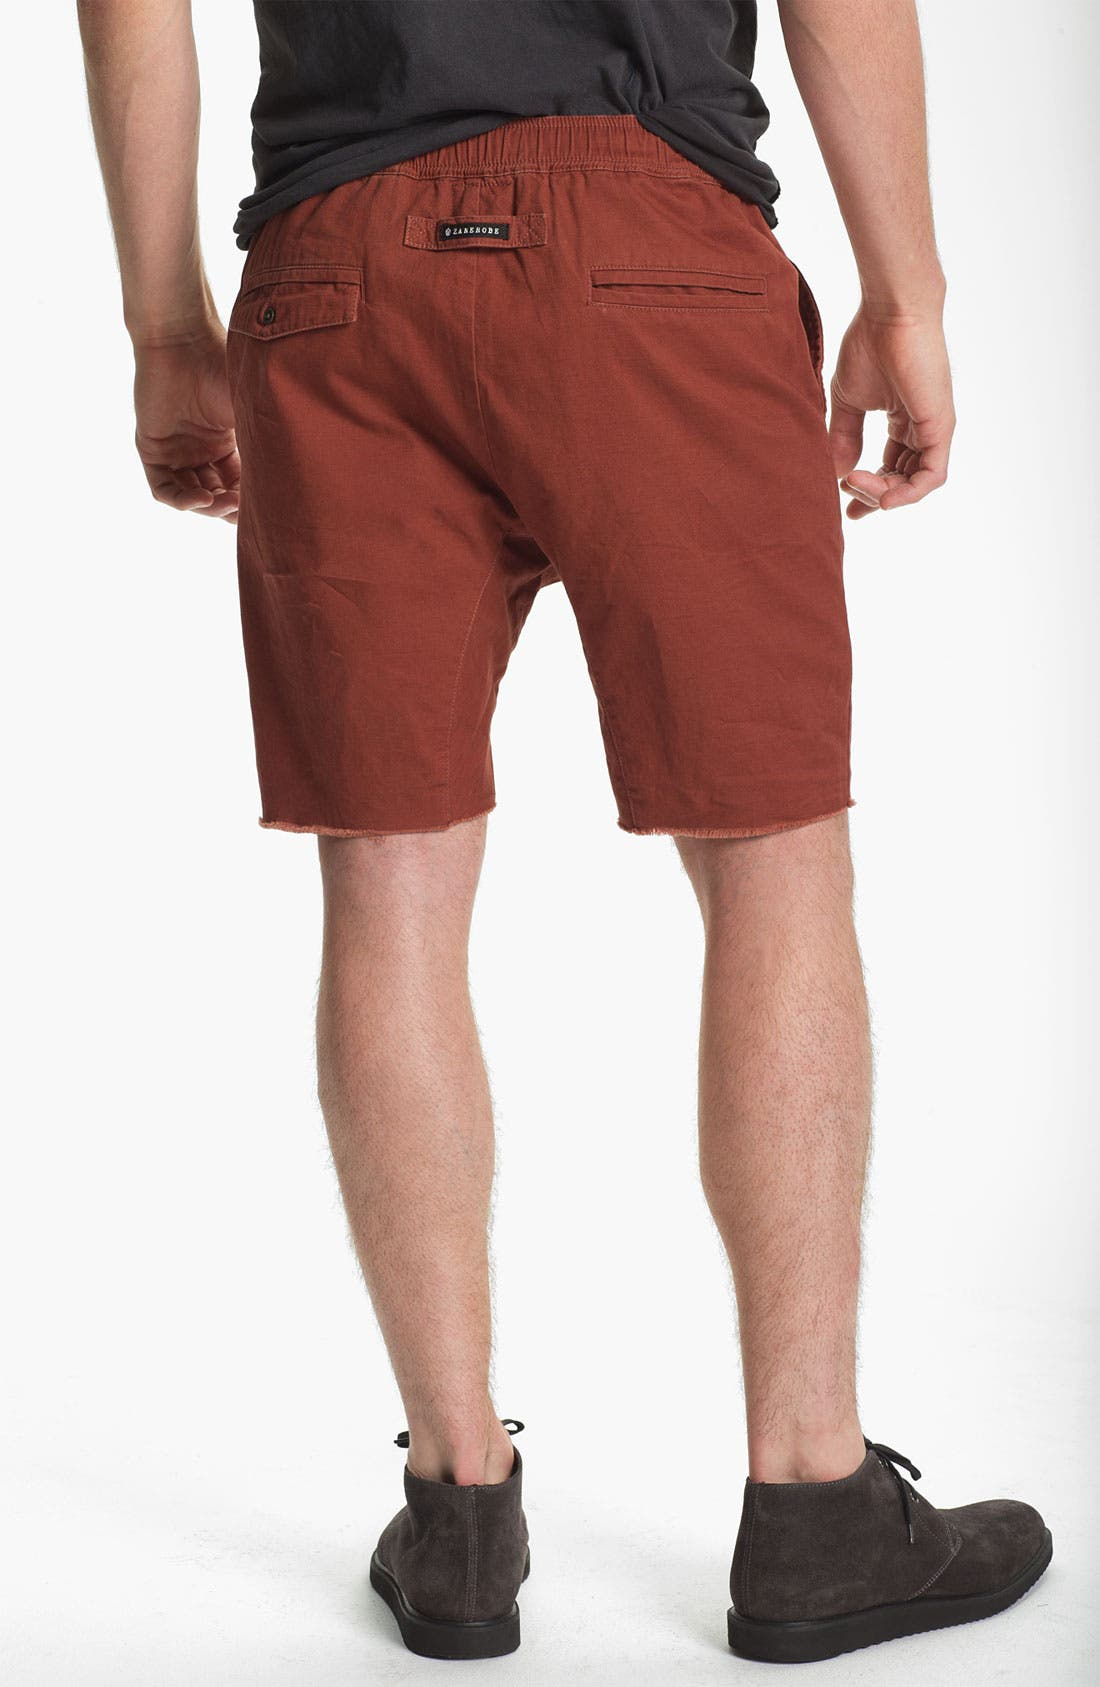 'Sureshot' Chino Shorts,                             Alternate thumbnail 6, color,                             640